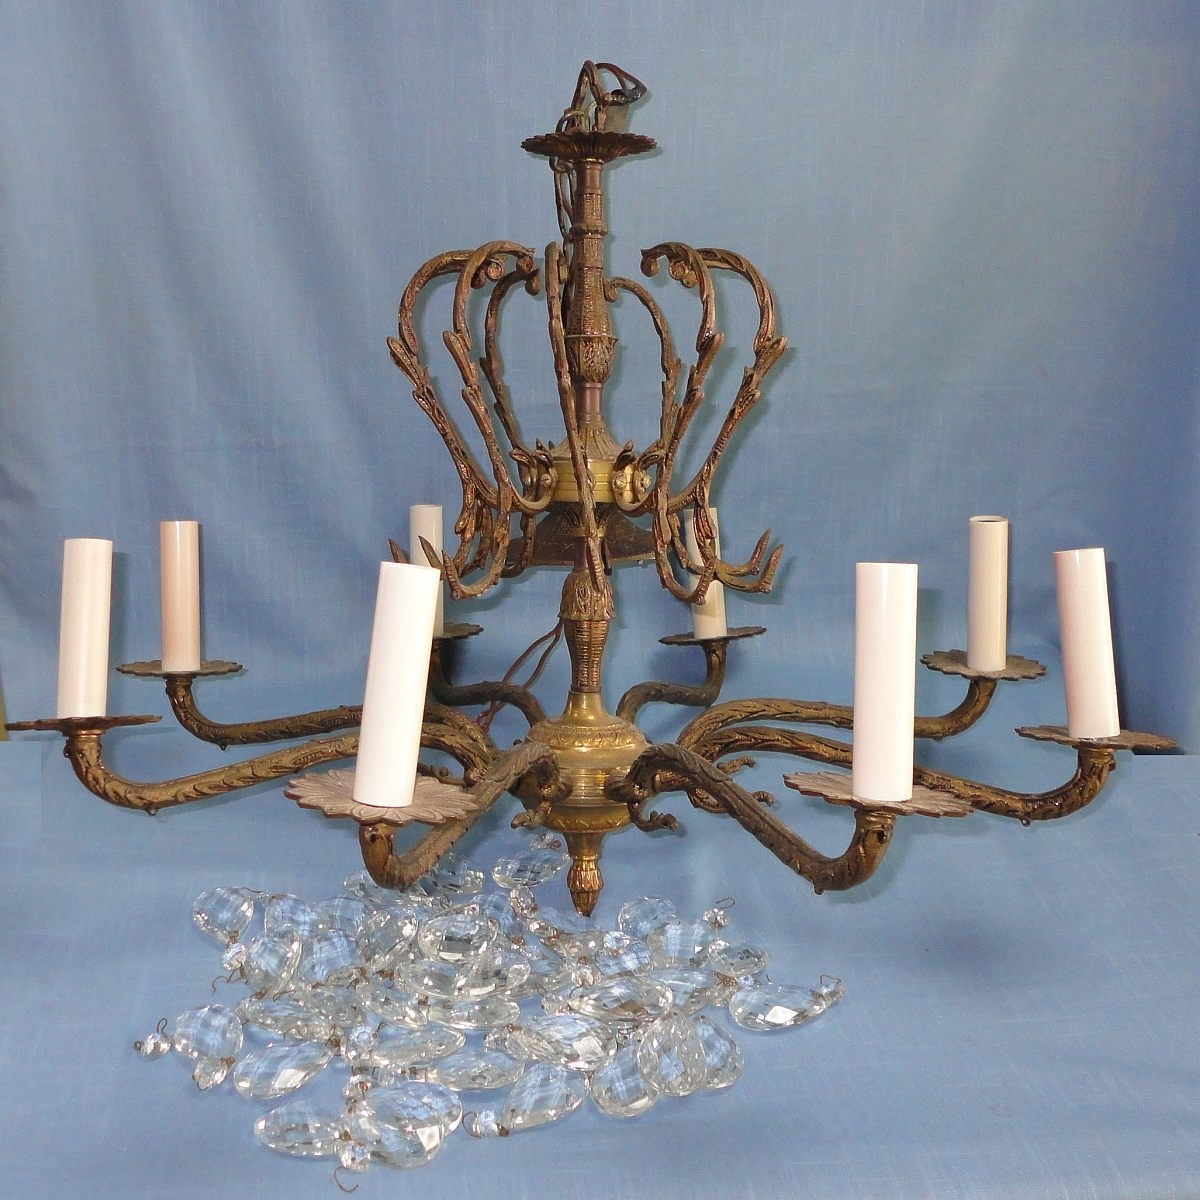 Antique Furniture Regarding Latest Old Brass Chandeliers (View 11 of 20)